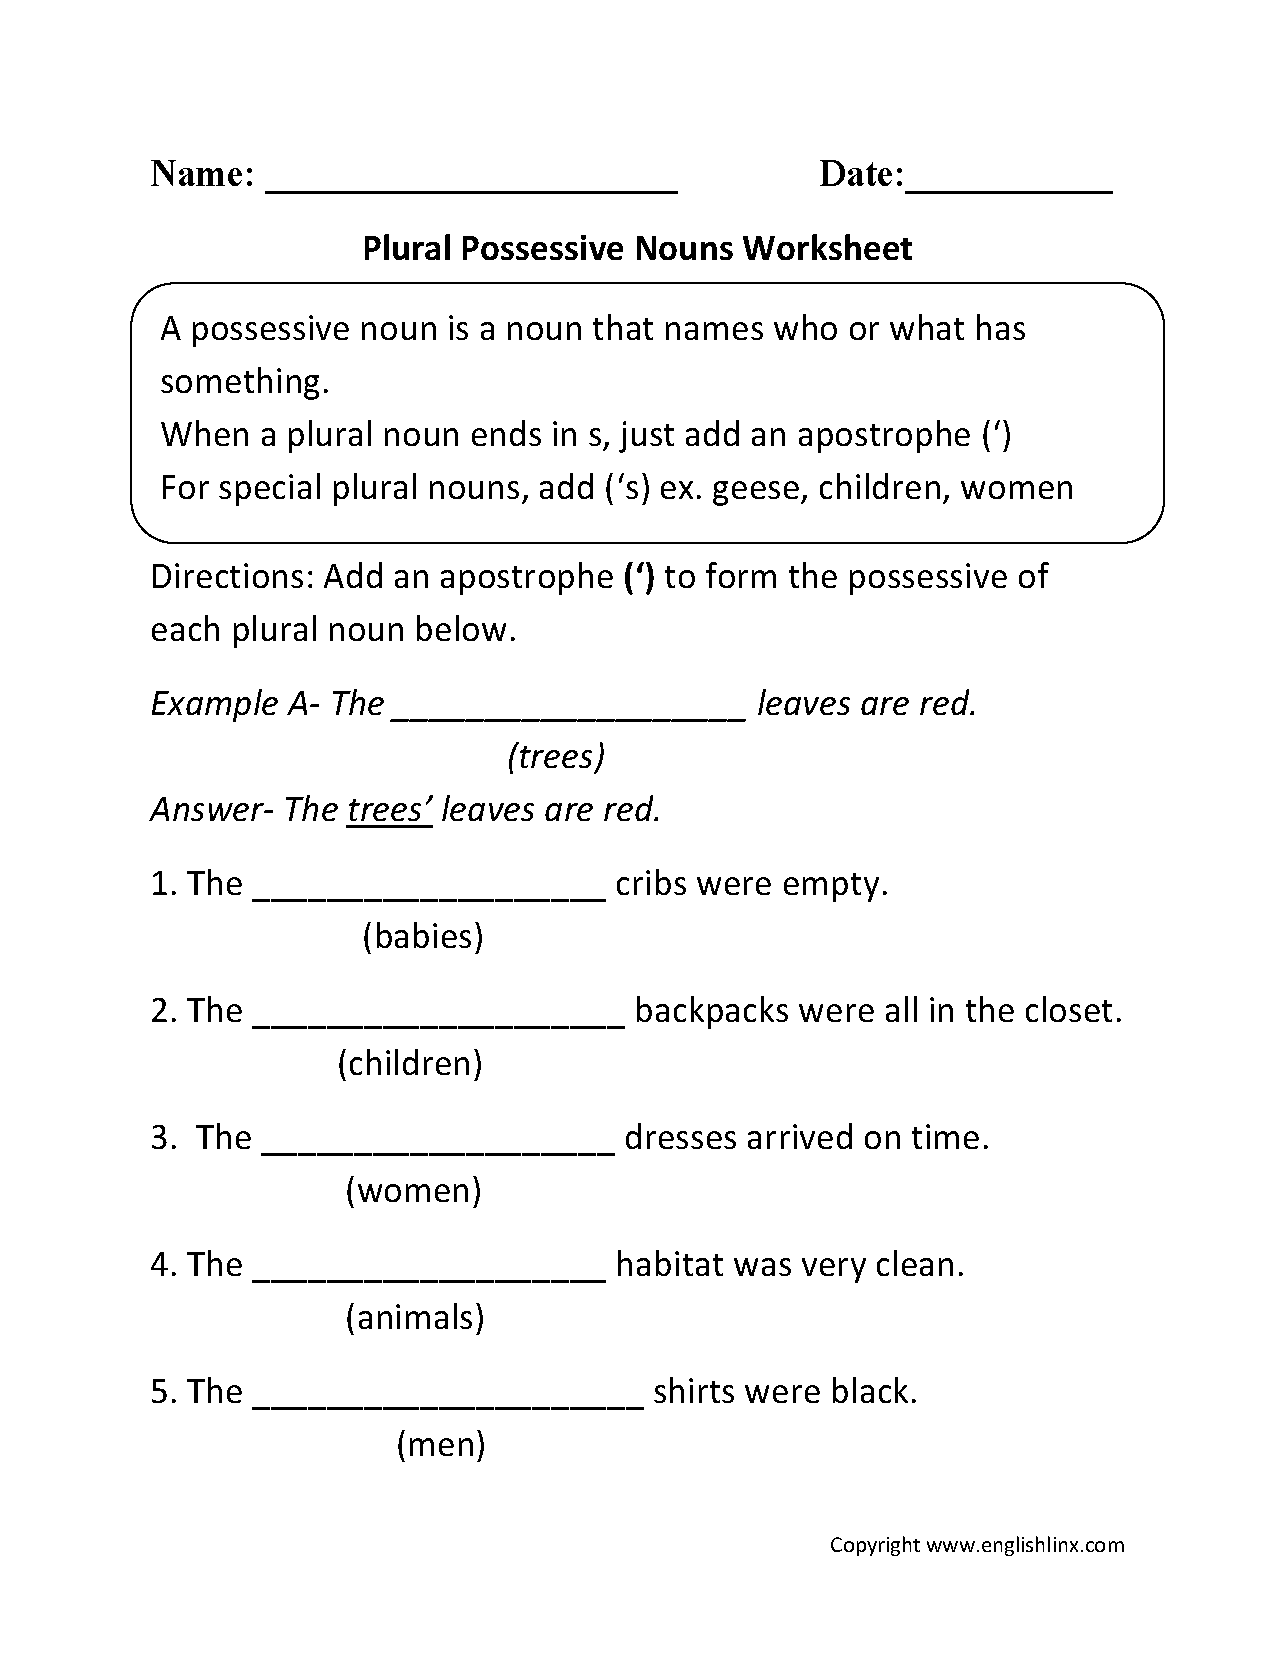 Plural Possessive Nouns Worksheets – Irregular Plural Nouns Worksheet 4th Grade